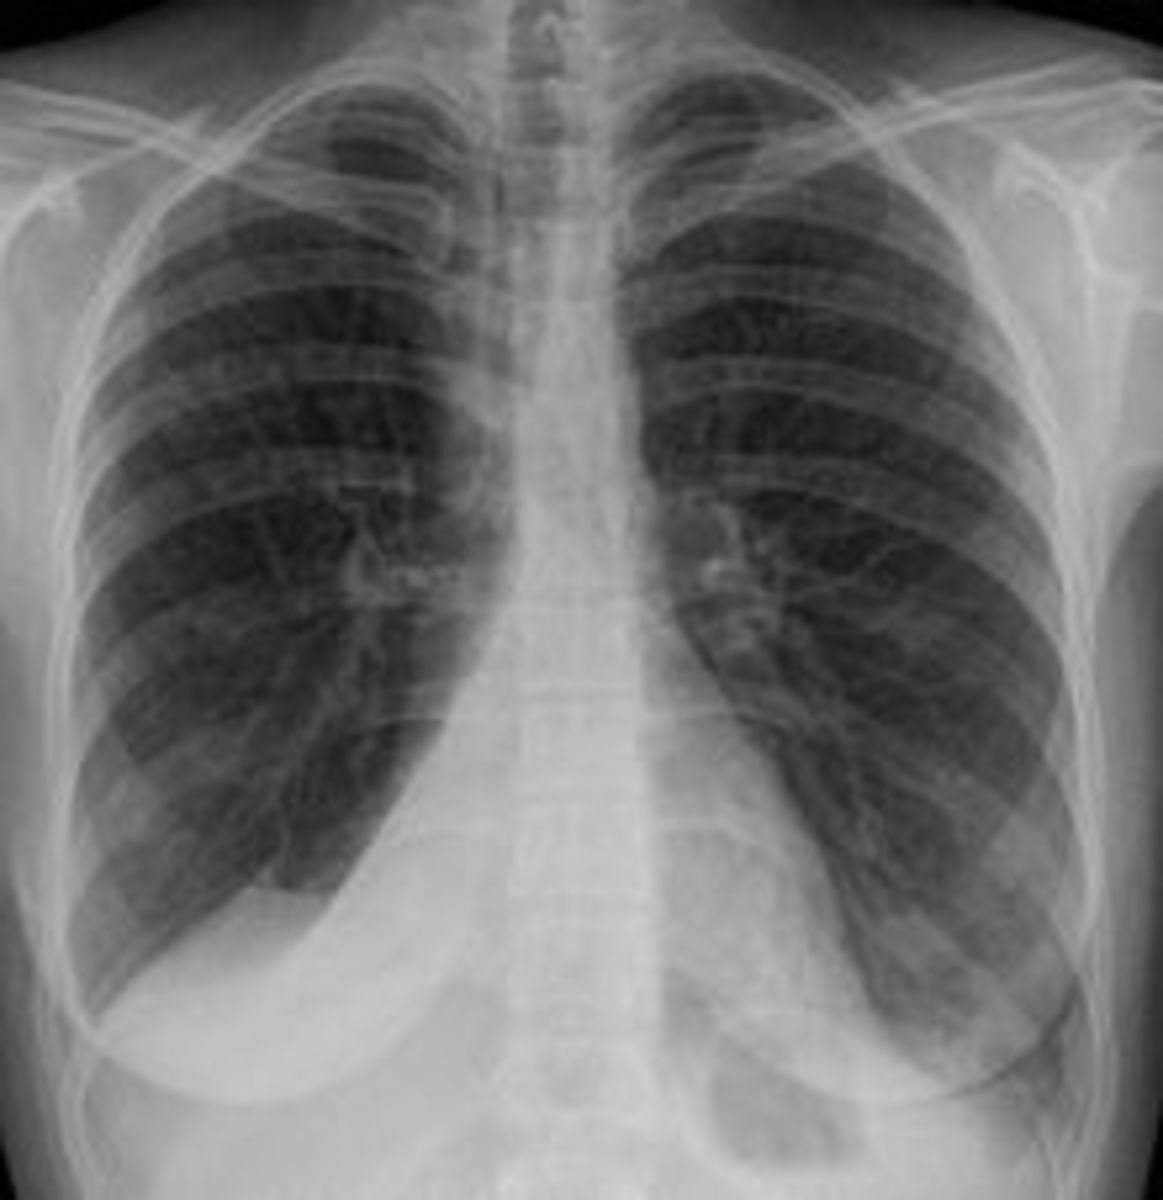 The collapsed lung usually reinflates slowly if the blockage of the airway has been removed. However, some scarring or damage may remain.